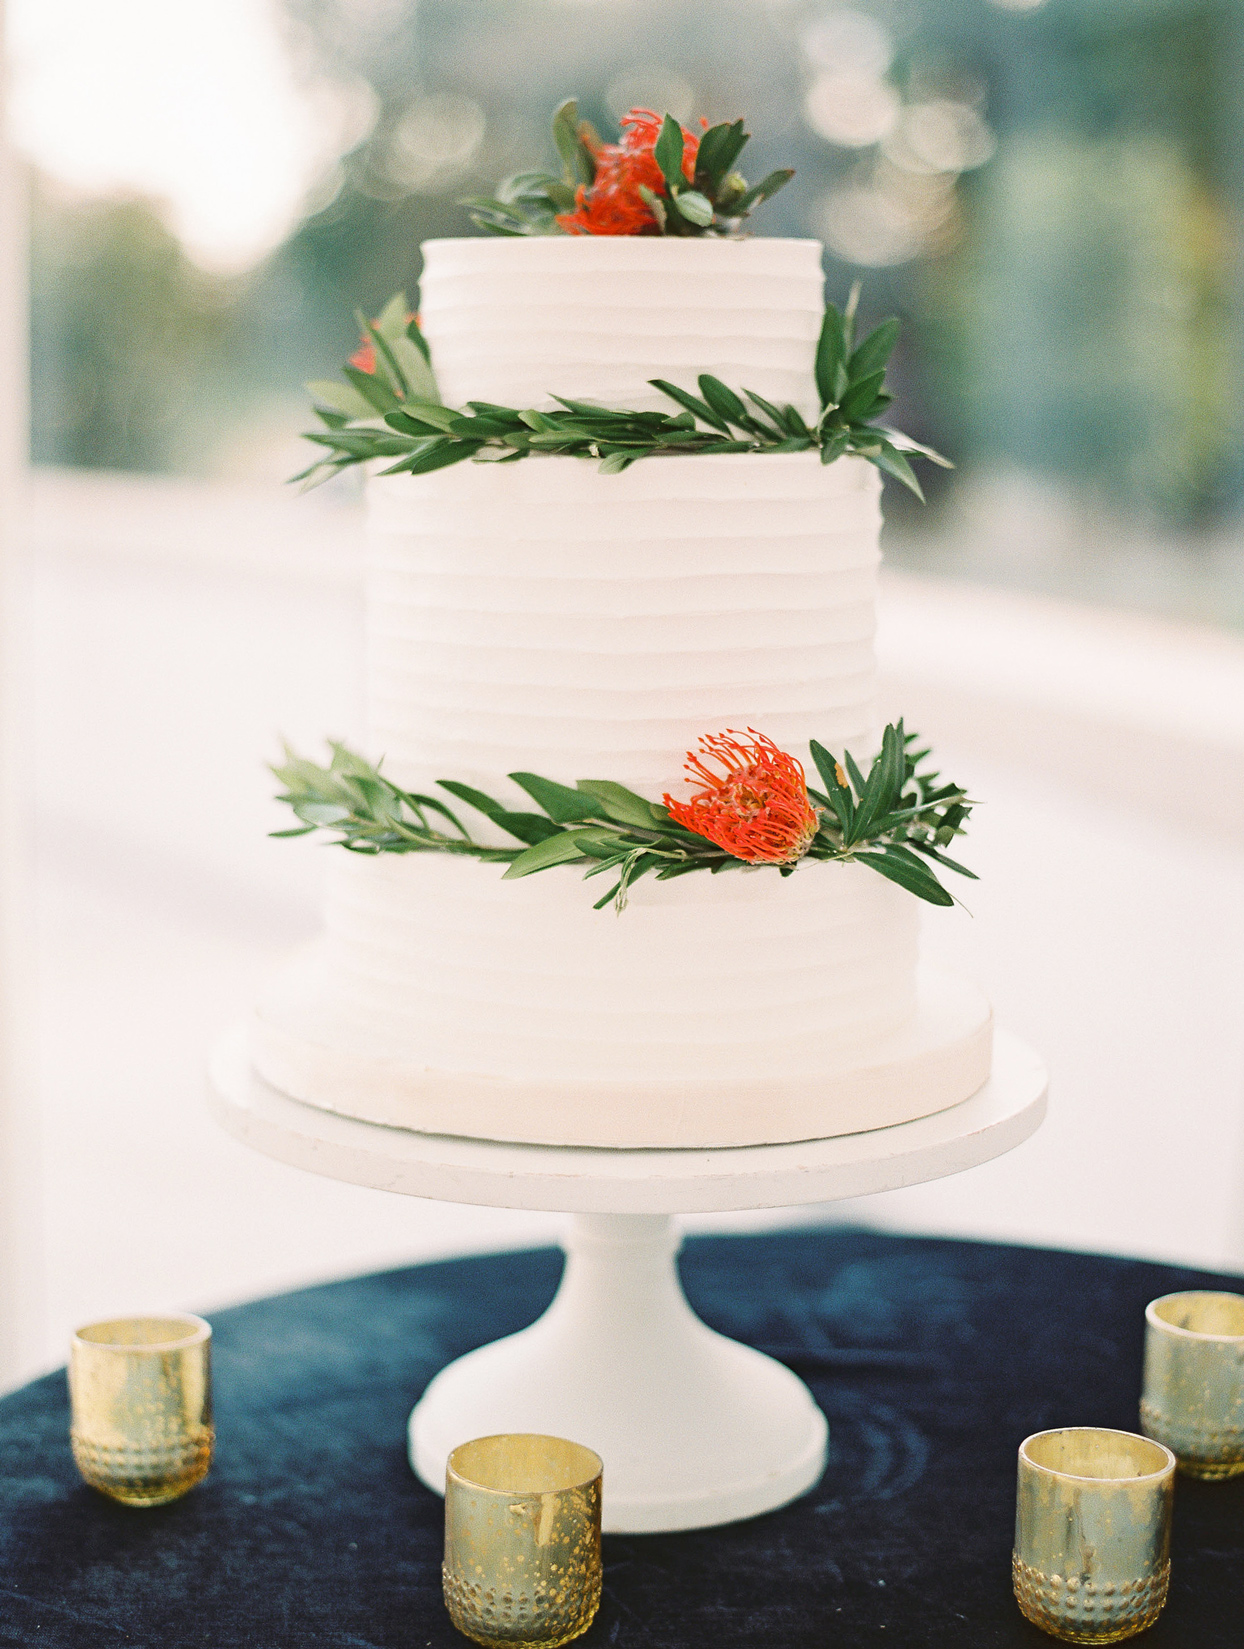 three tiered white frosted wedding cake with greenery and red floral accent